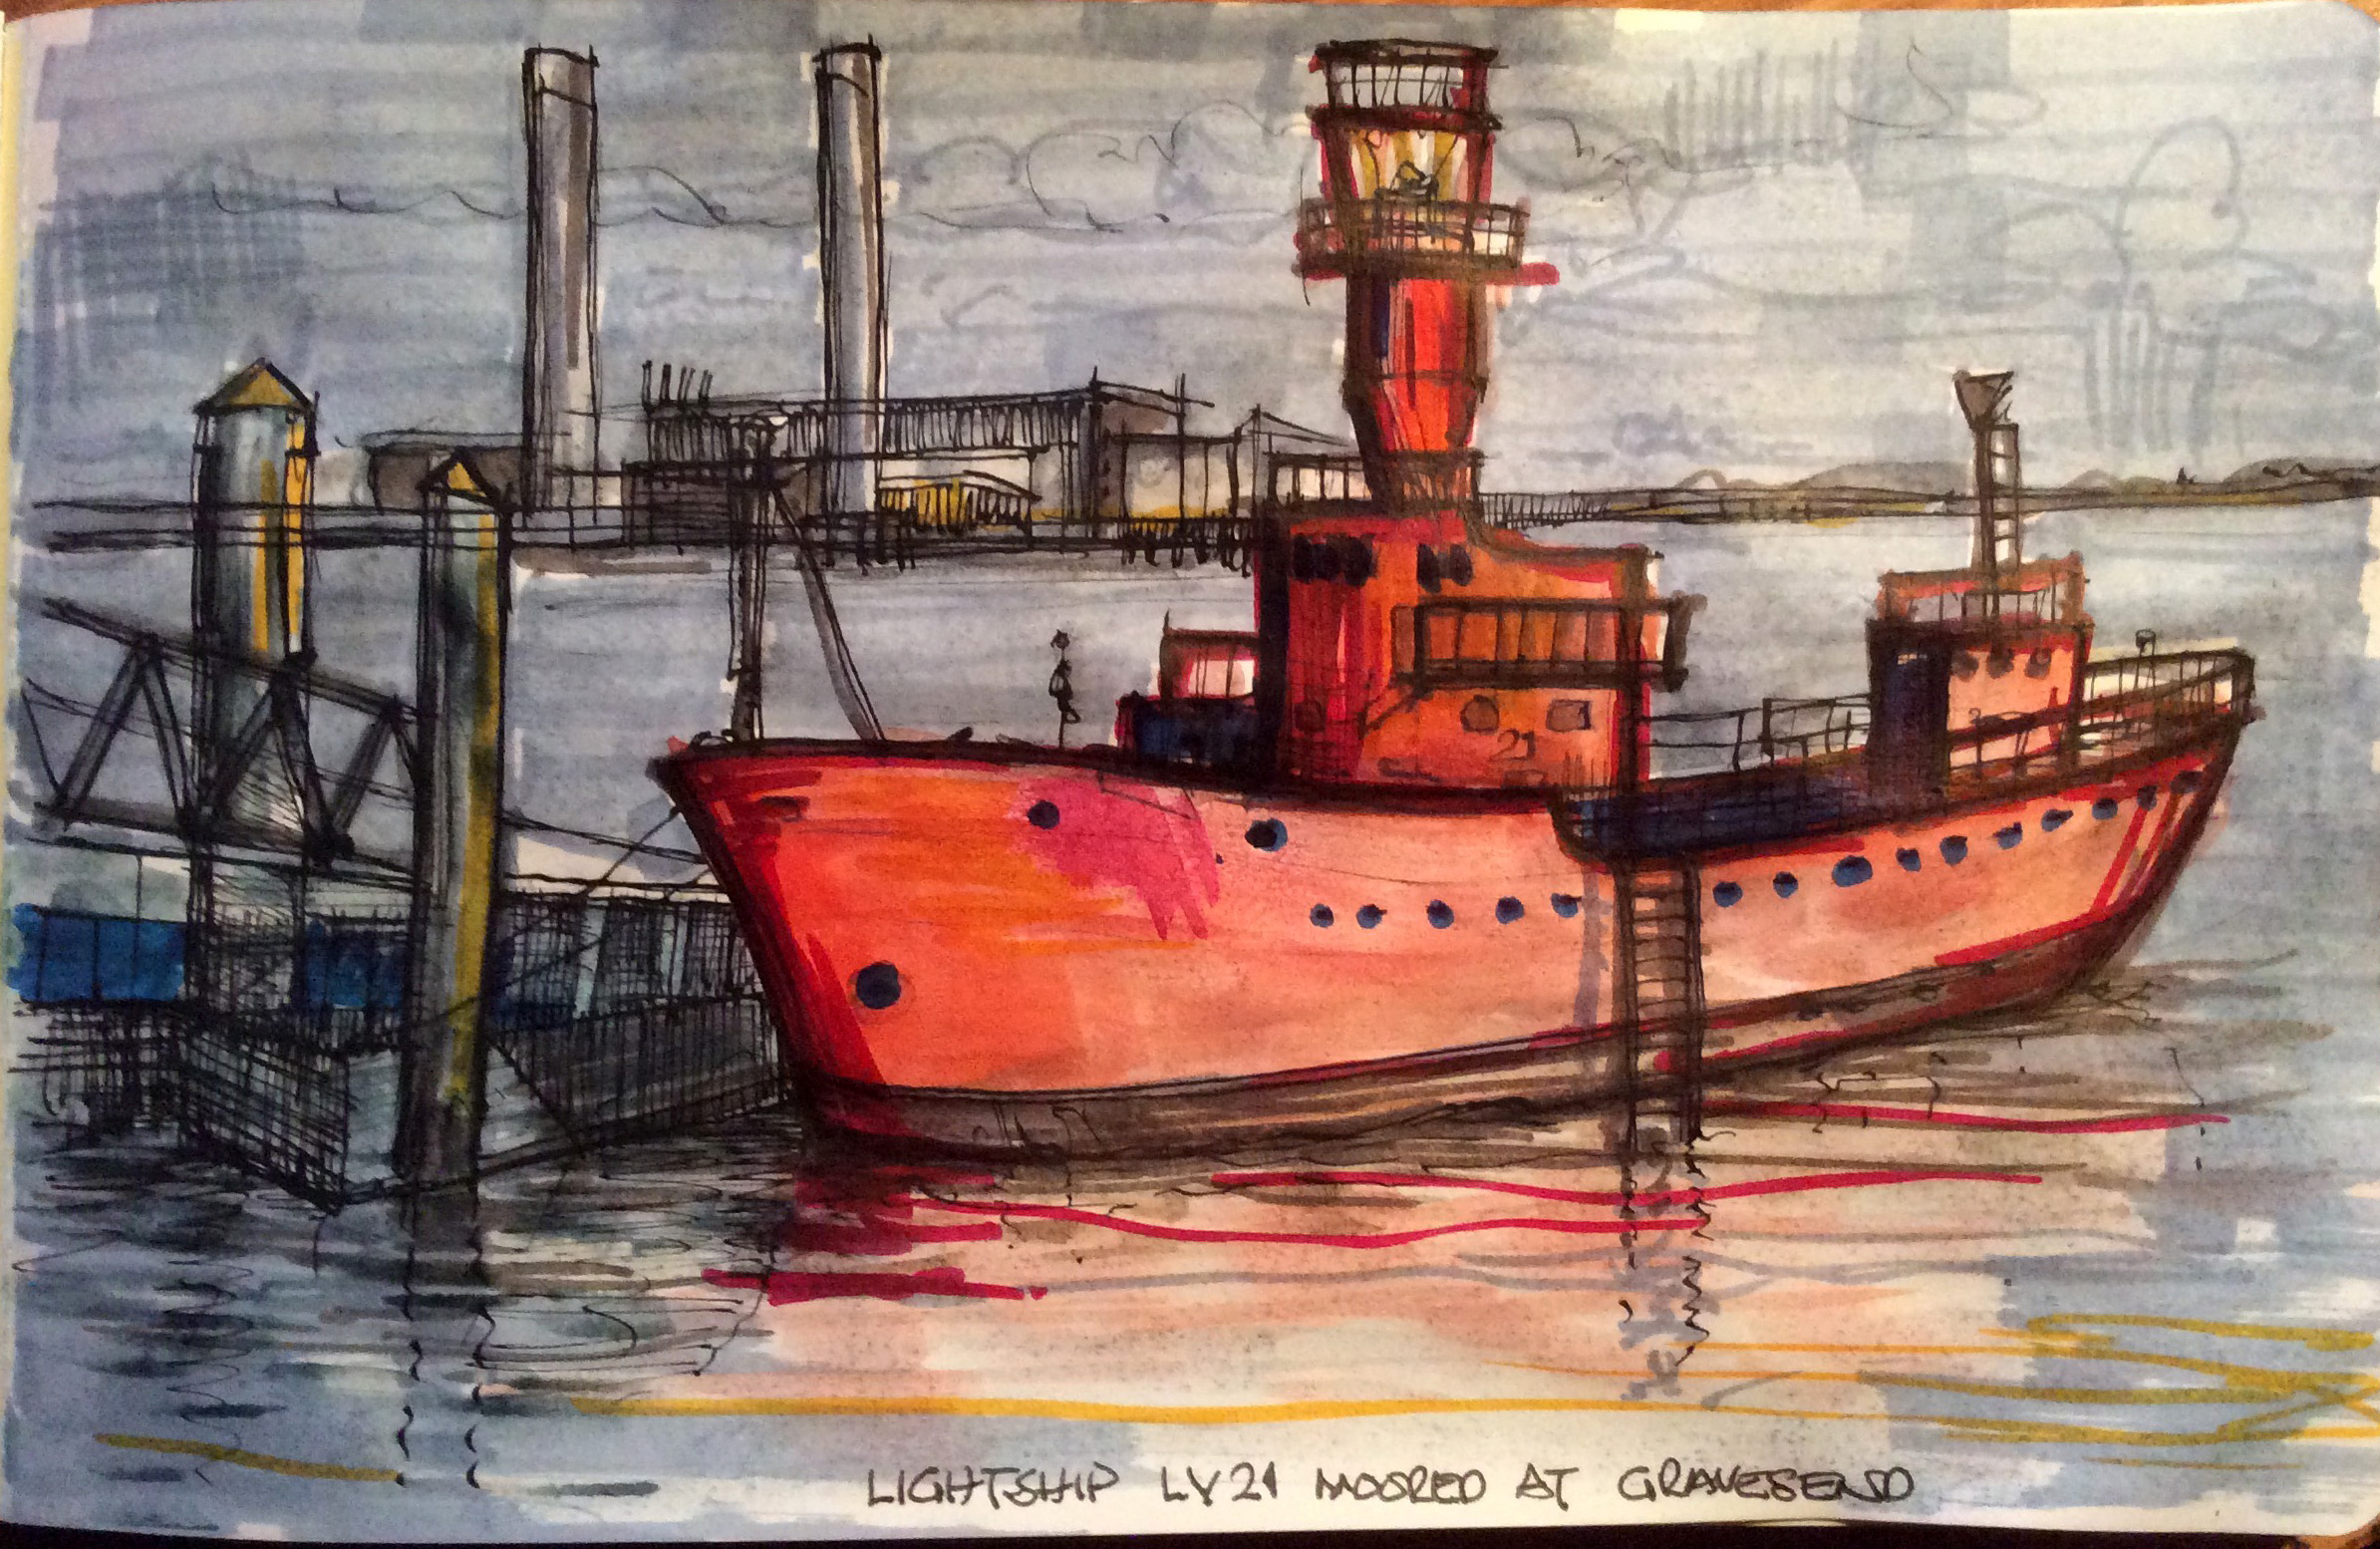 The Lightship LV21 moored at Gravesend